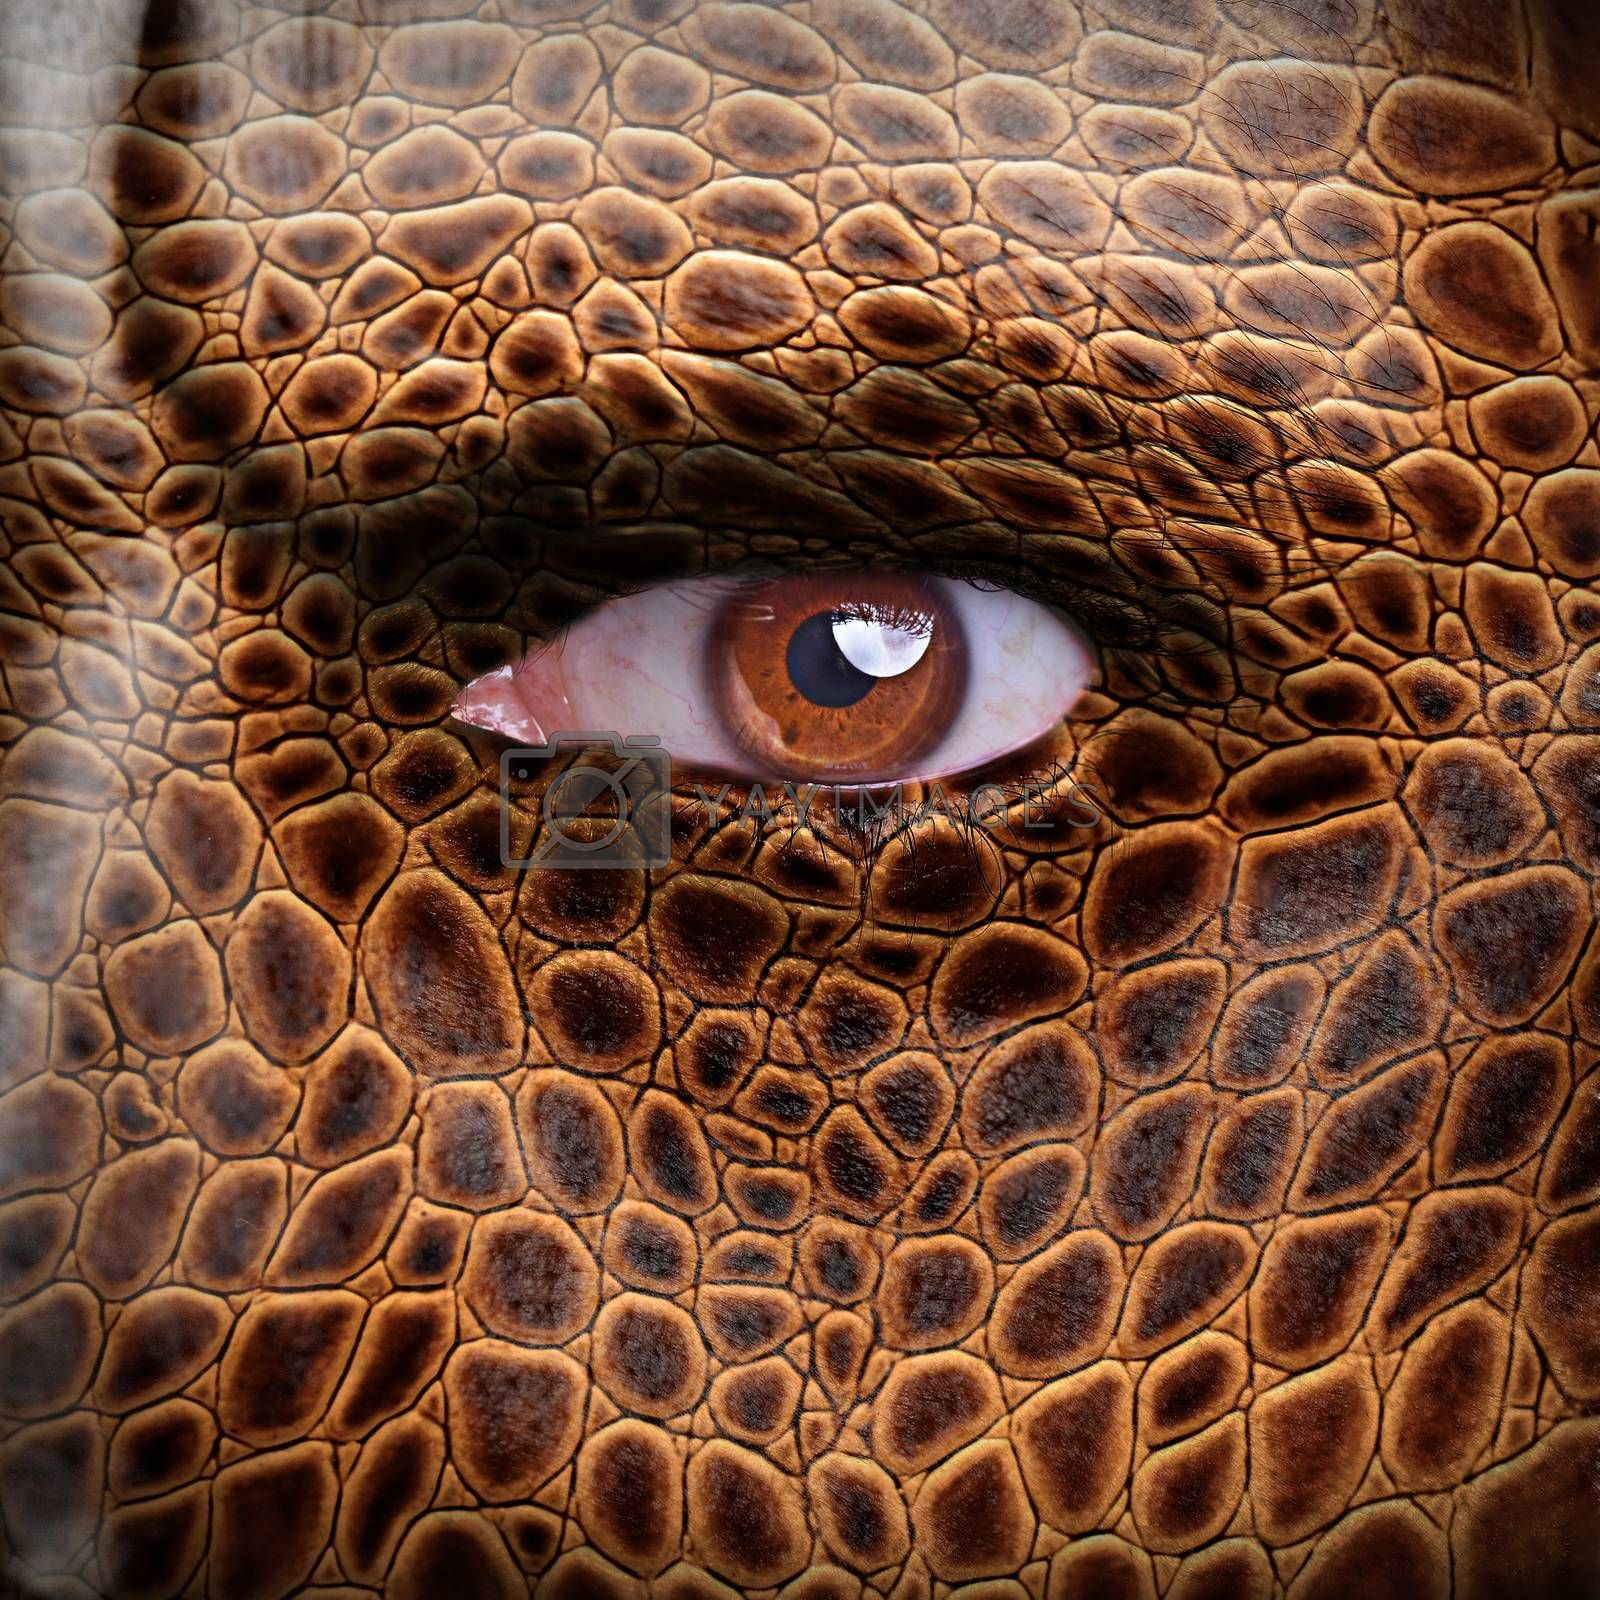 Lizard skin pattern on angry man face - nature concept